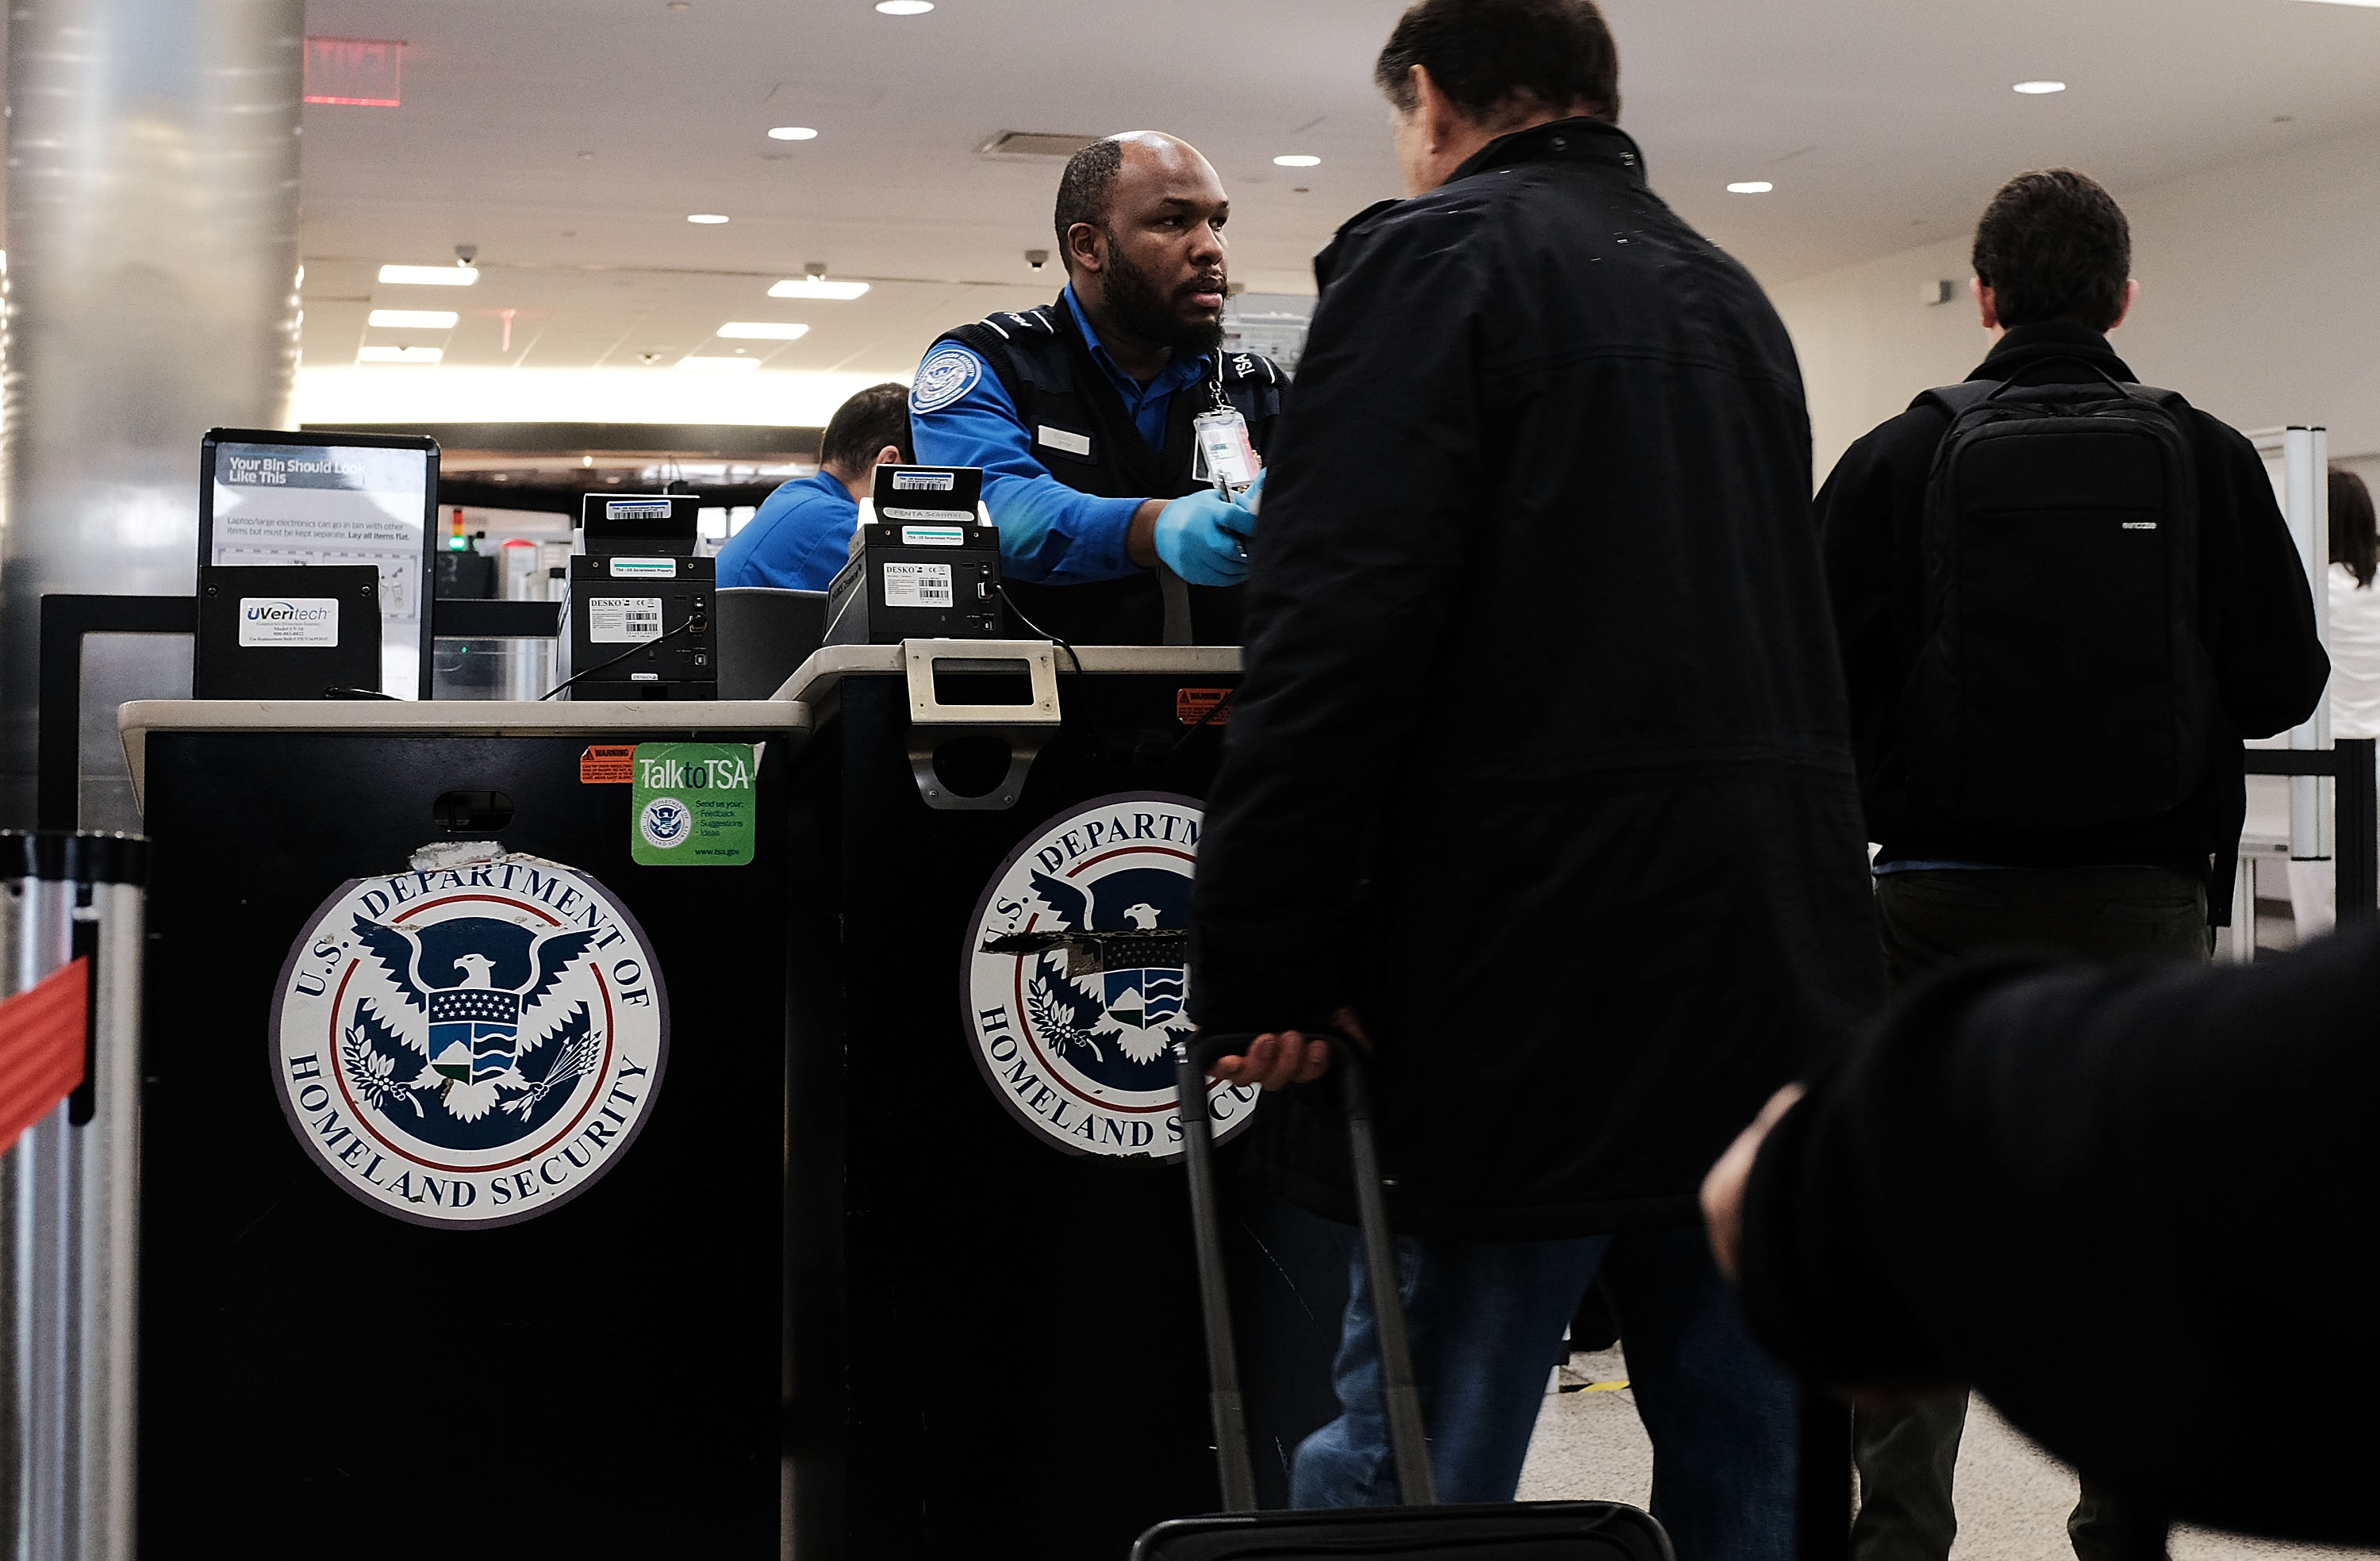 The government is secretly monitoring ordinary US citizens when they fly